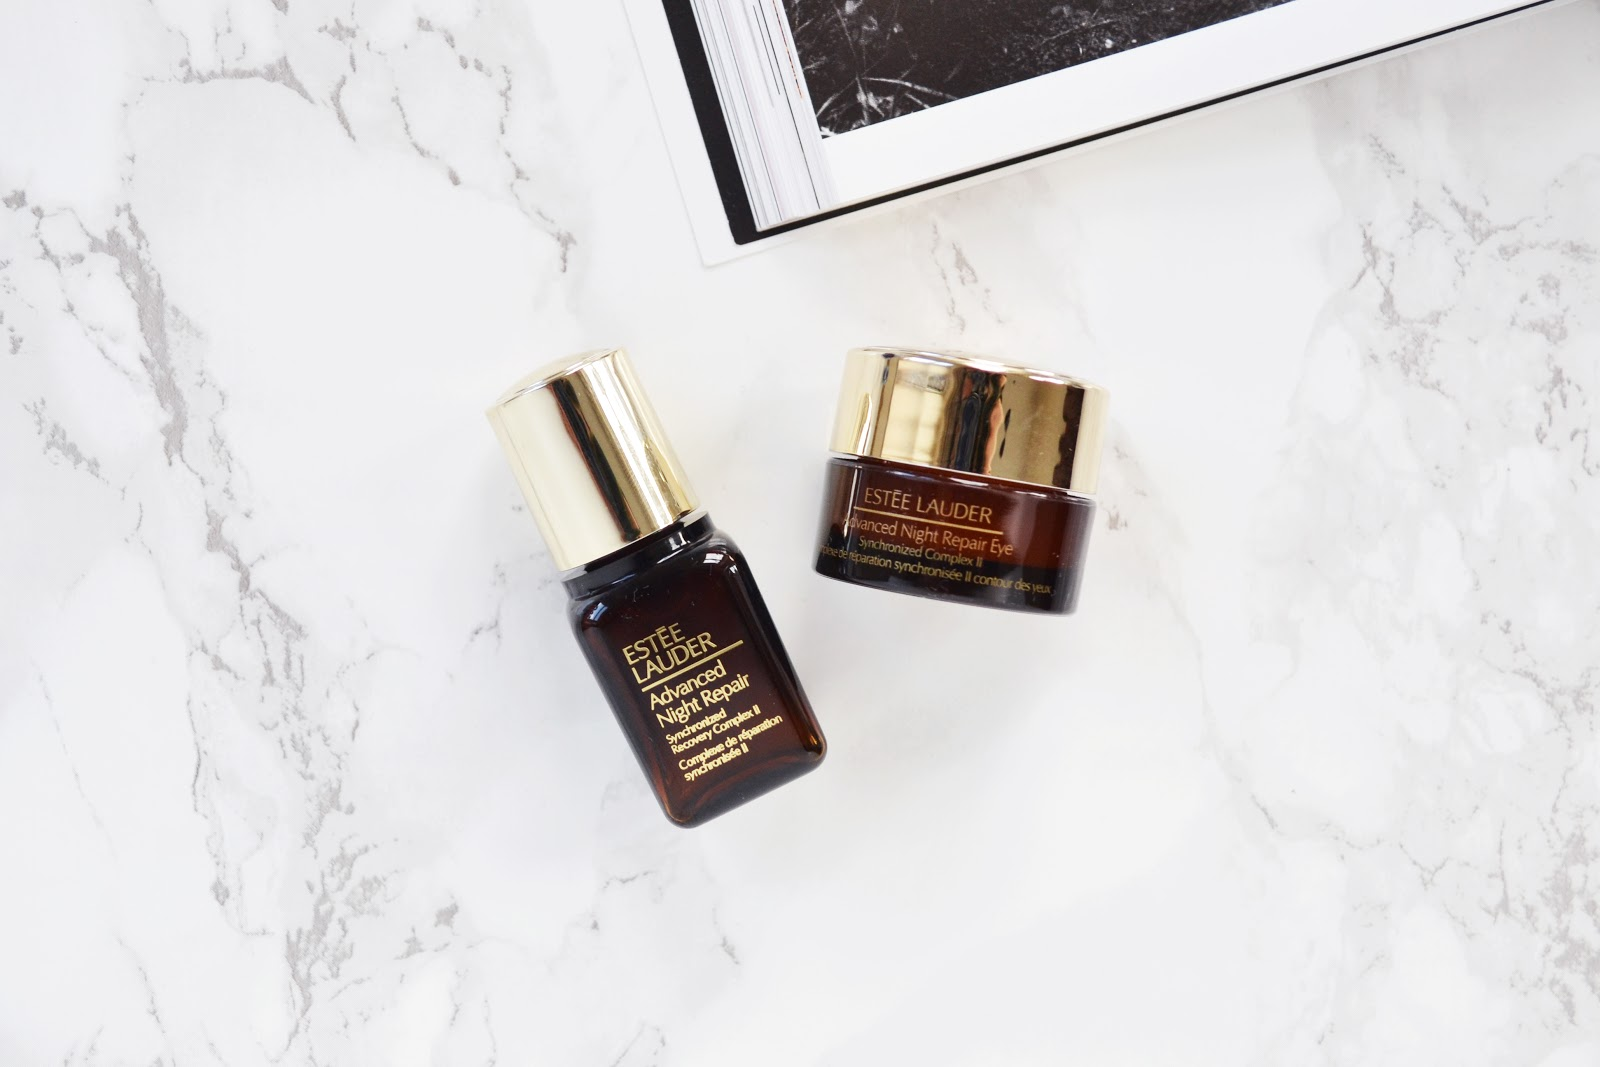 estee lauder skincare advanced night repair